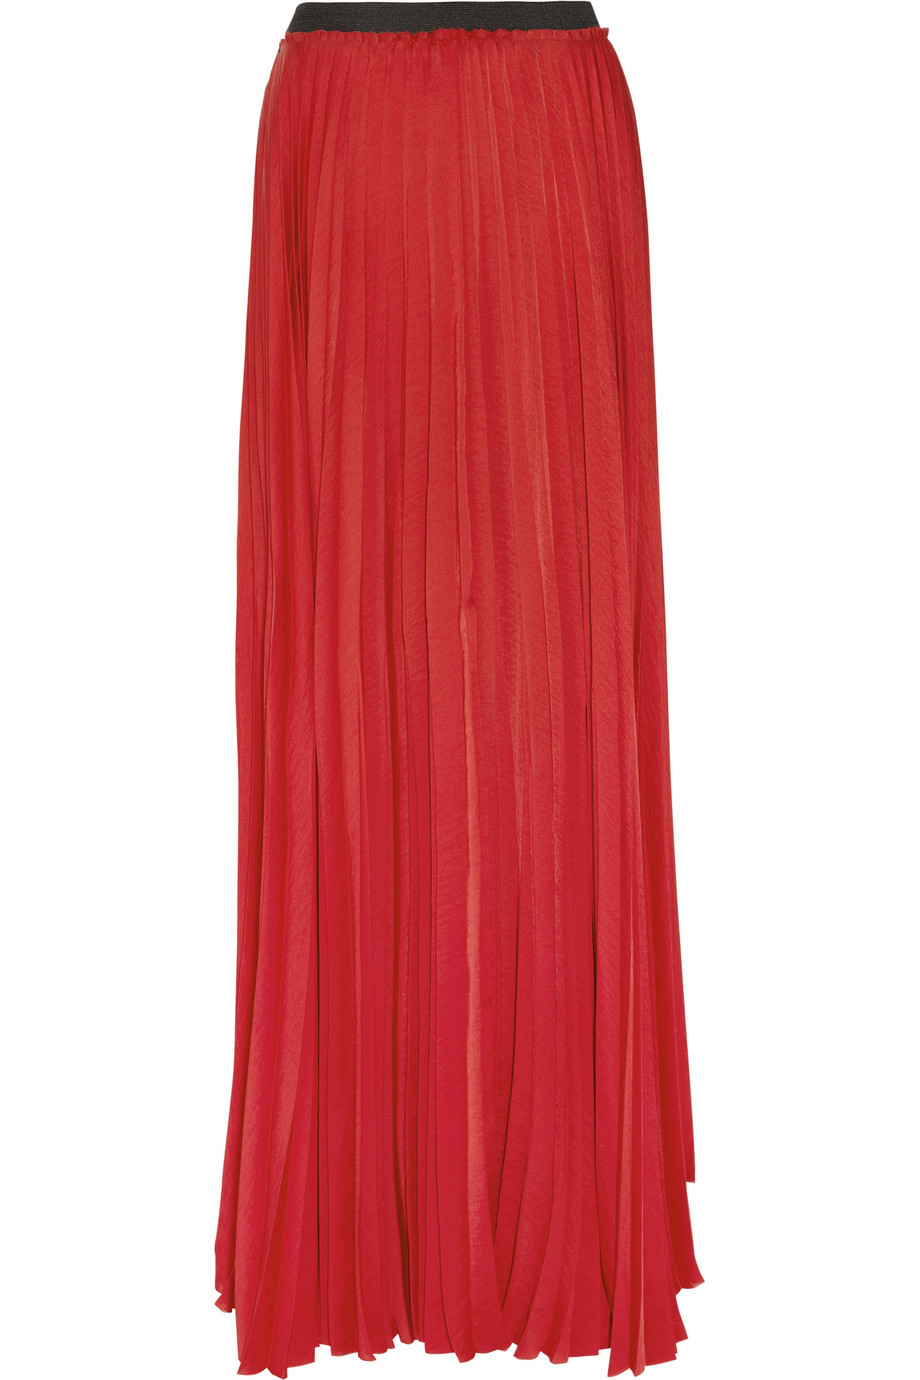 how to wear red pleated maxi skirt